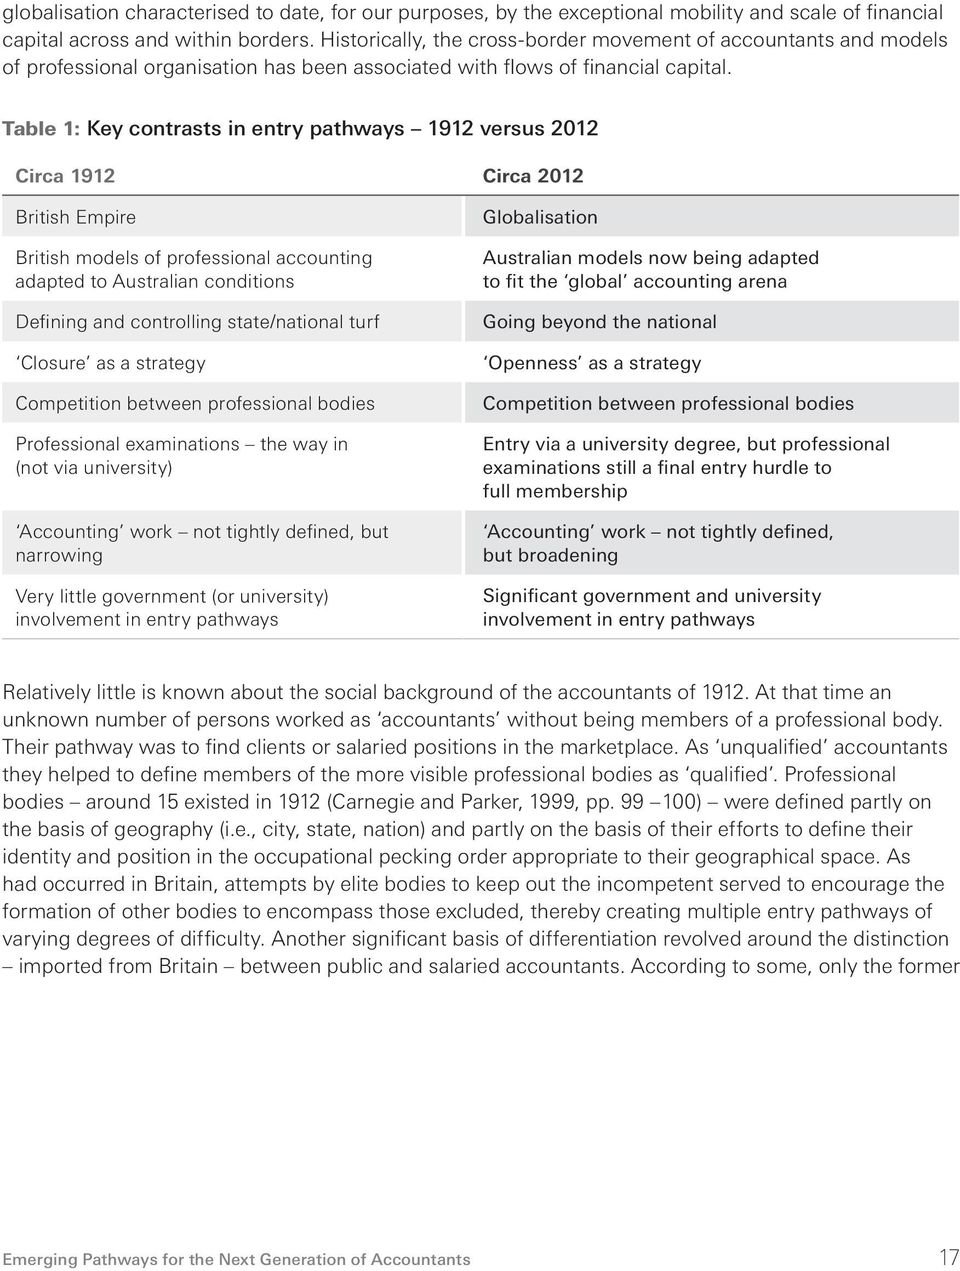 Table 1: Key contrasts in entry pathways 1912 versus 2012 Circa 1912 Circa 2012 British Empire British models of professional accounting adapted to Australian conditions Defining and controlling